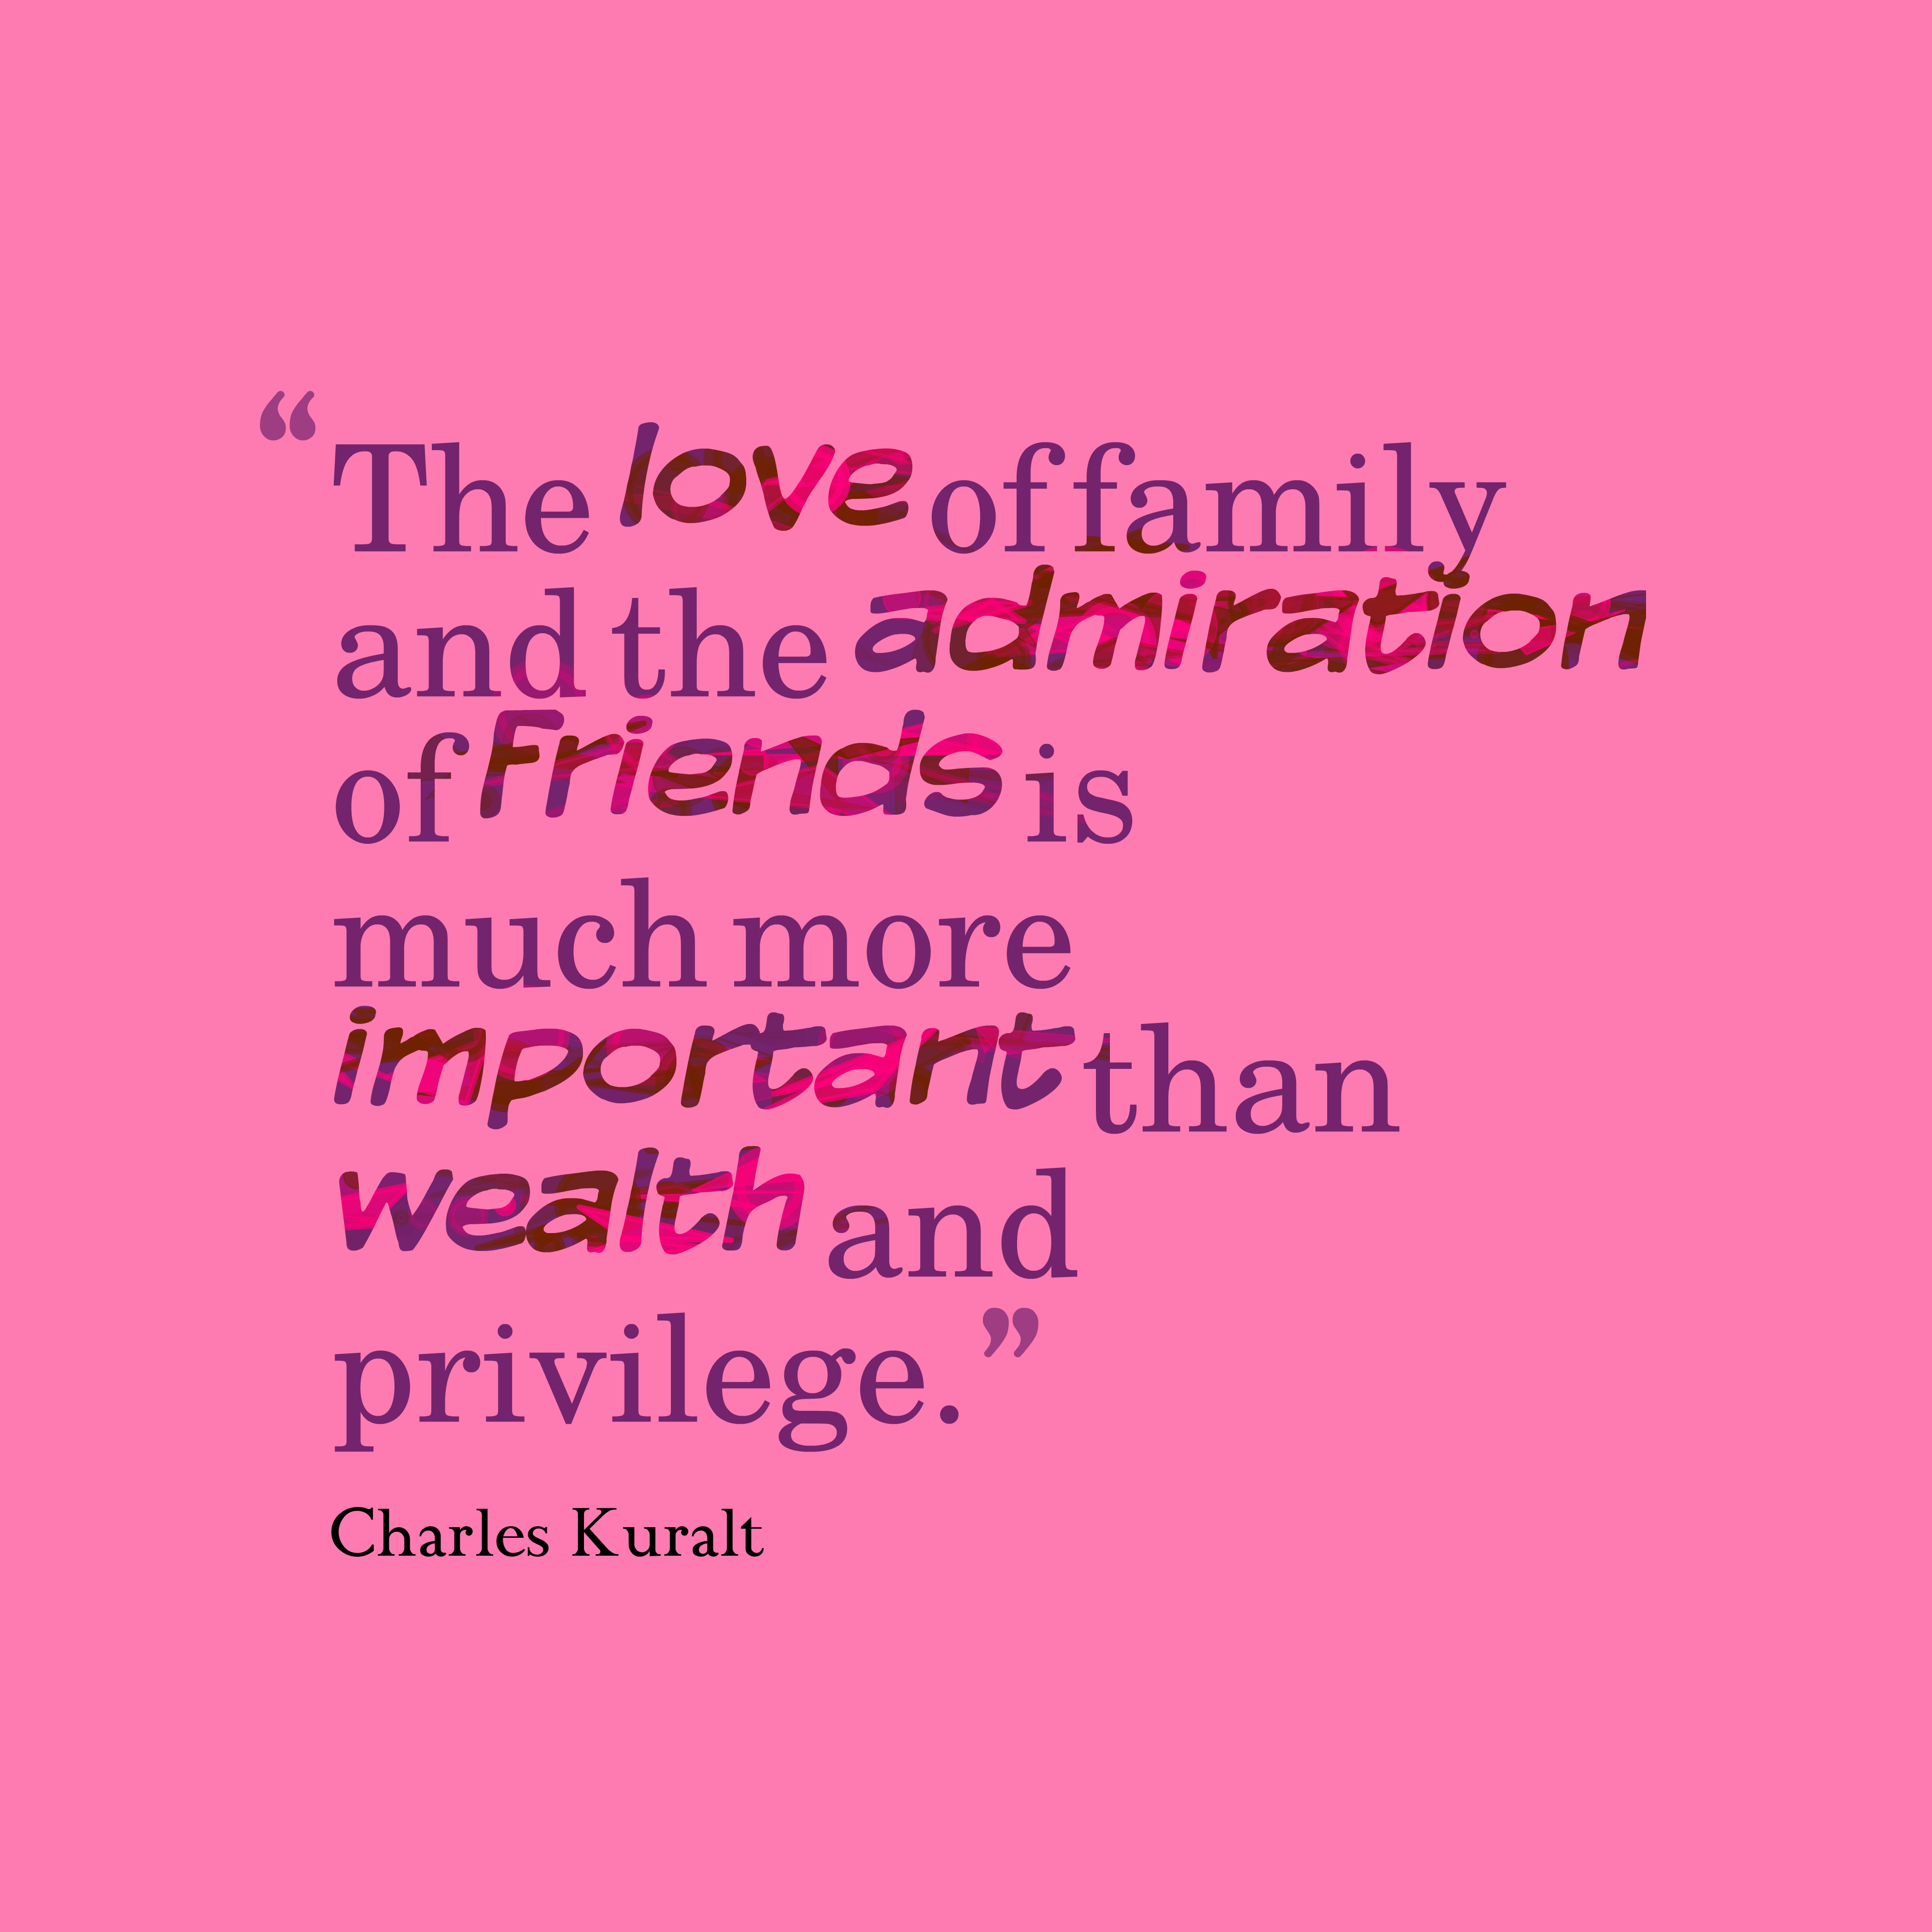 Quotes About Friends And Family  The Love Family And The Admiration Friends